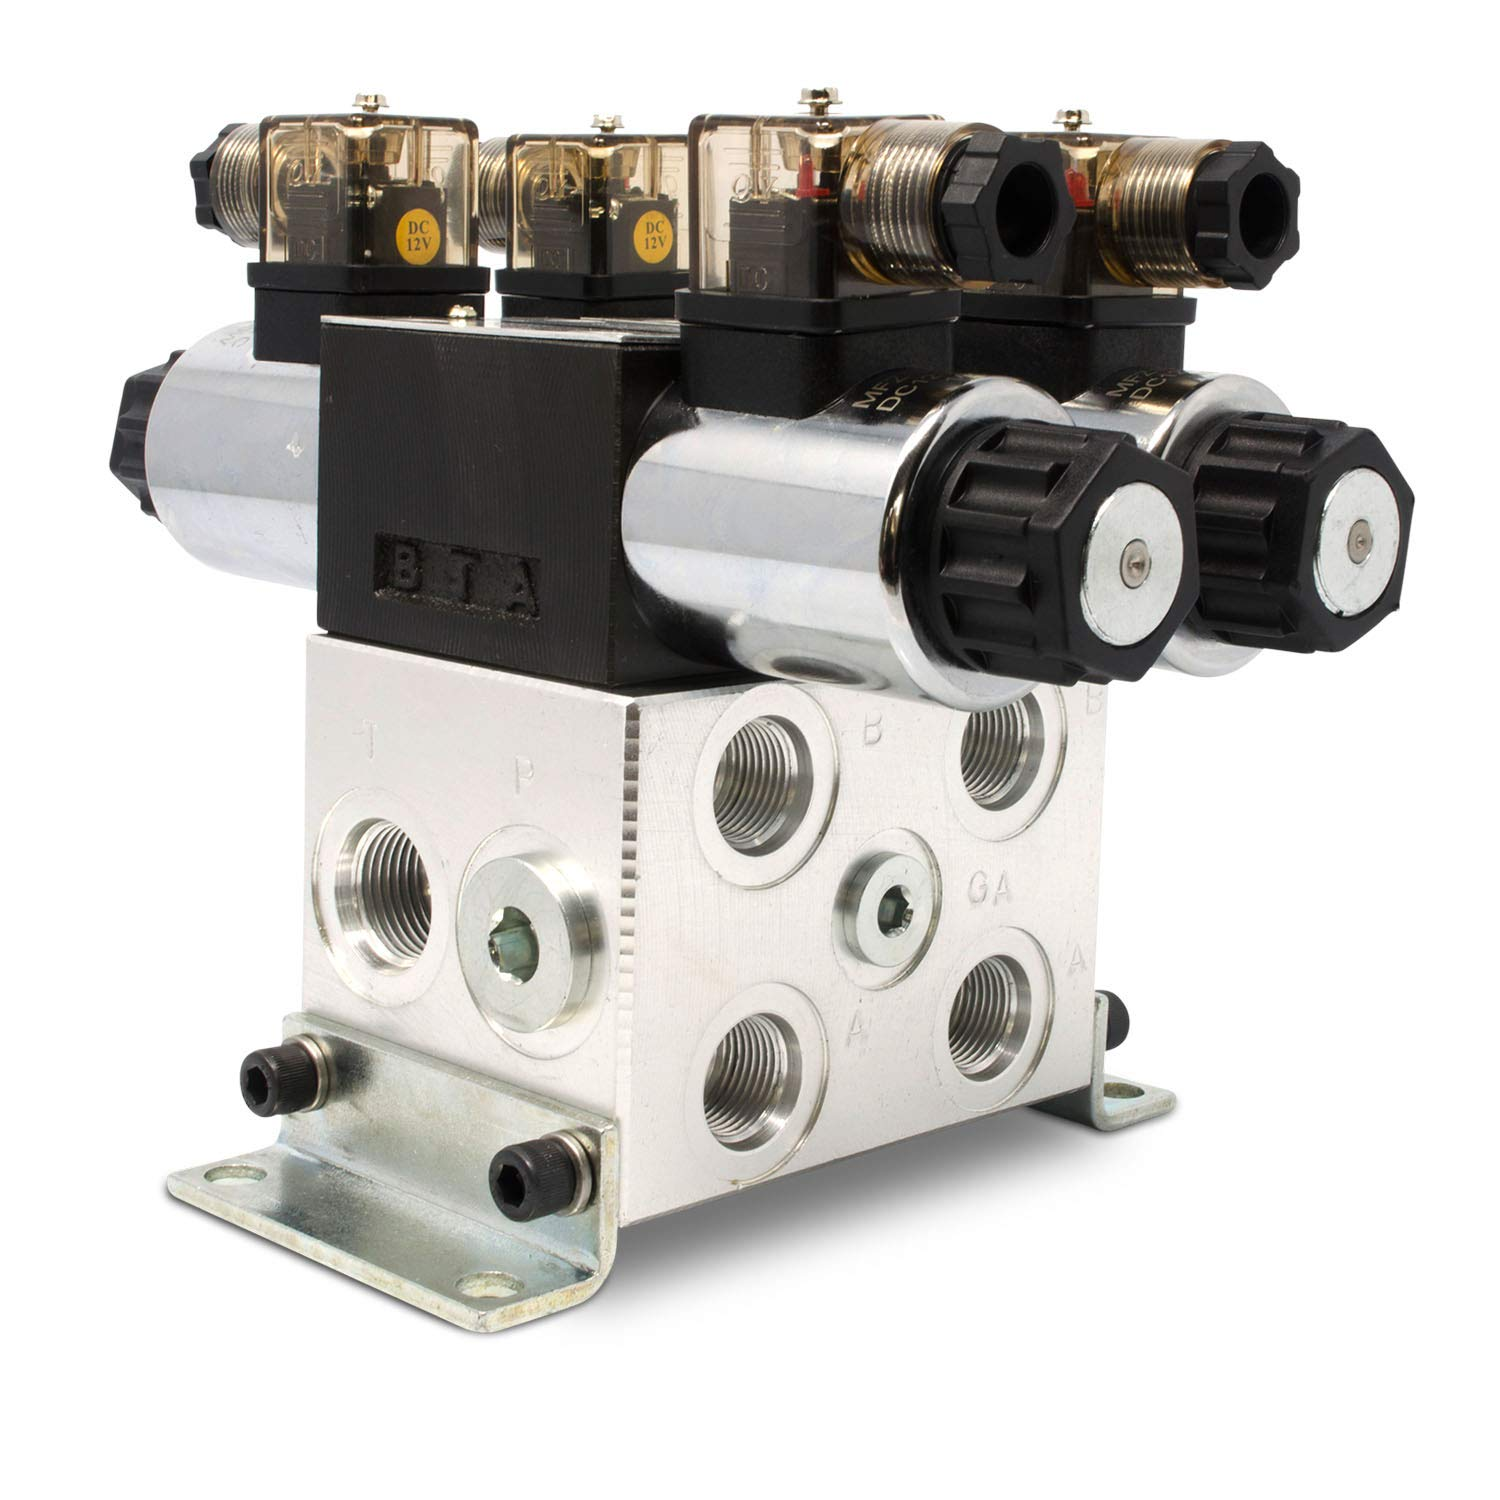 Electric Hydraulic Double Acting Control Valve w//Rocker Switch 15 GPM D Spool Motor Control, 12 Volt 2 Spool